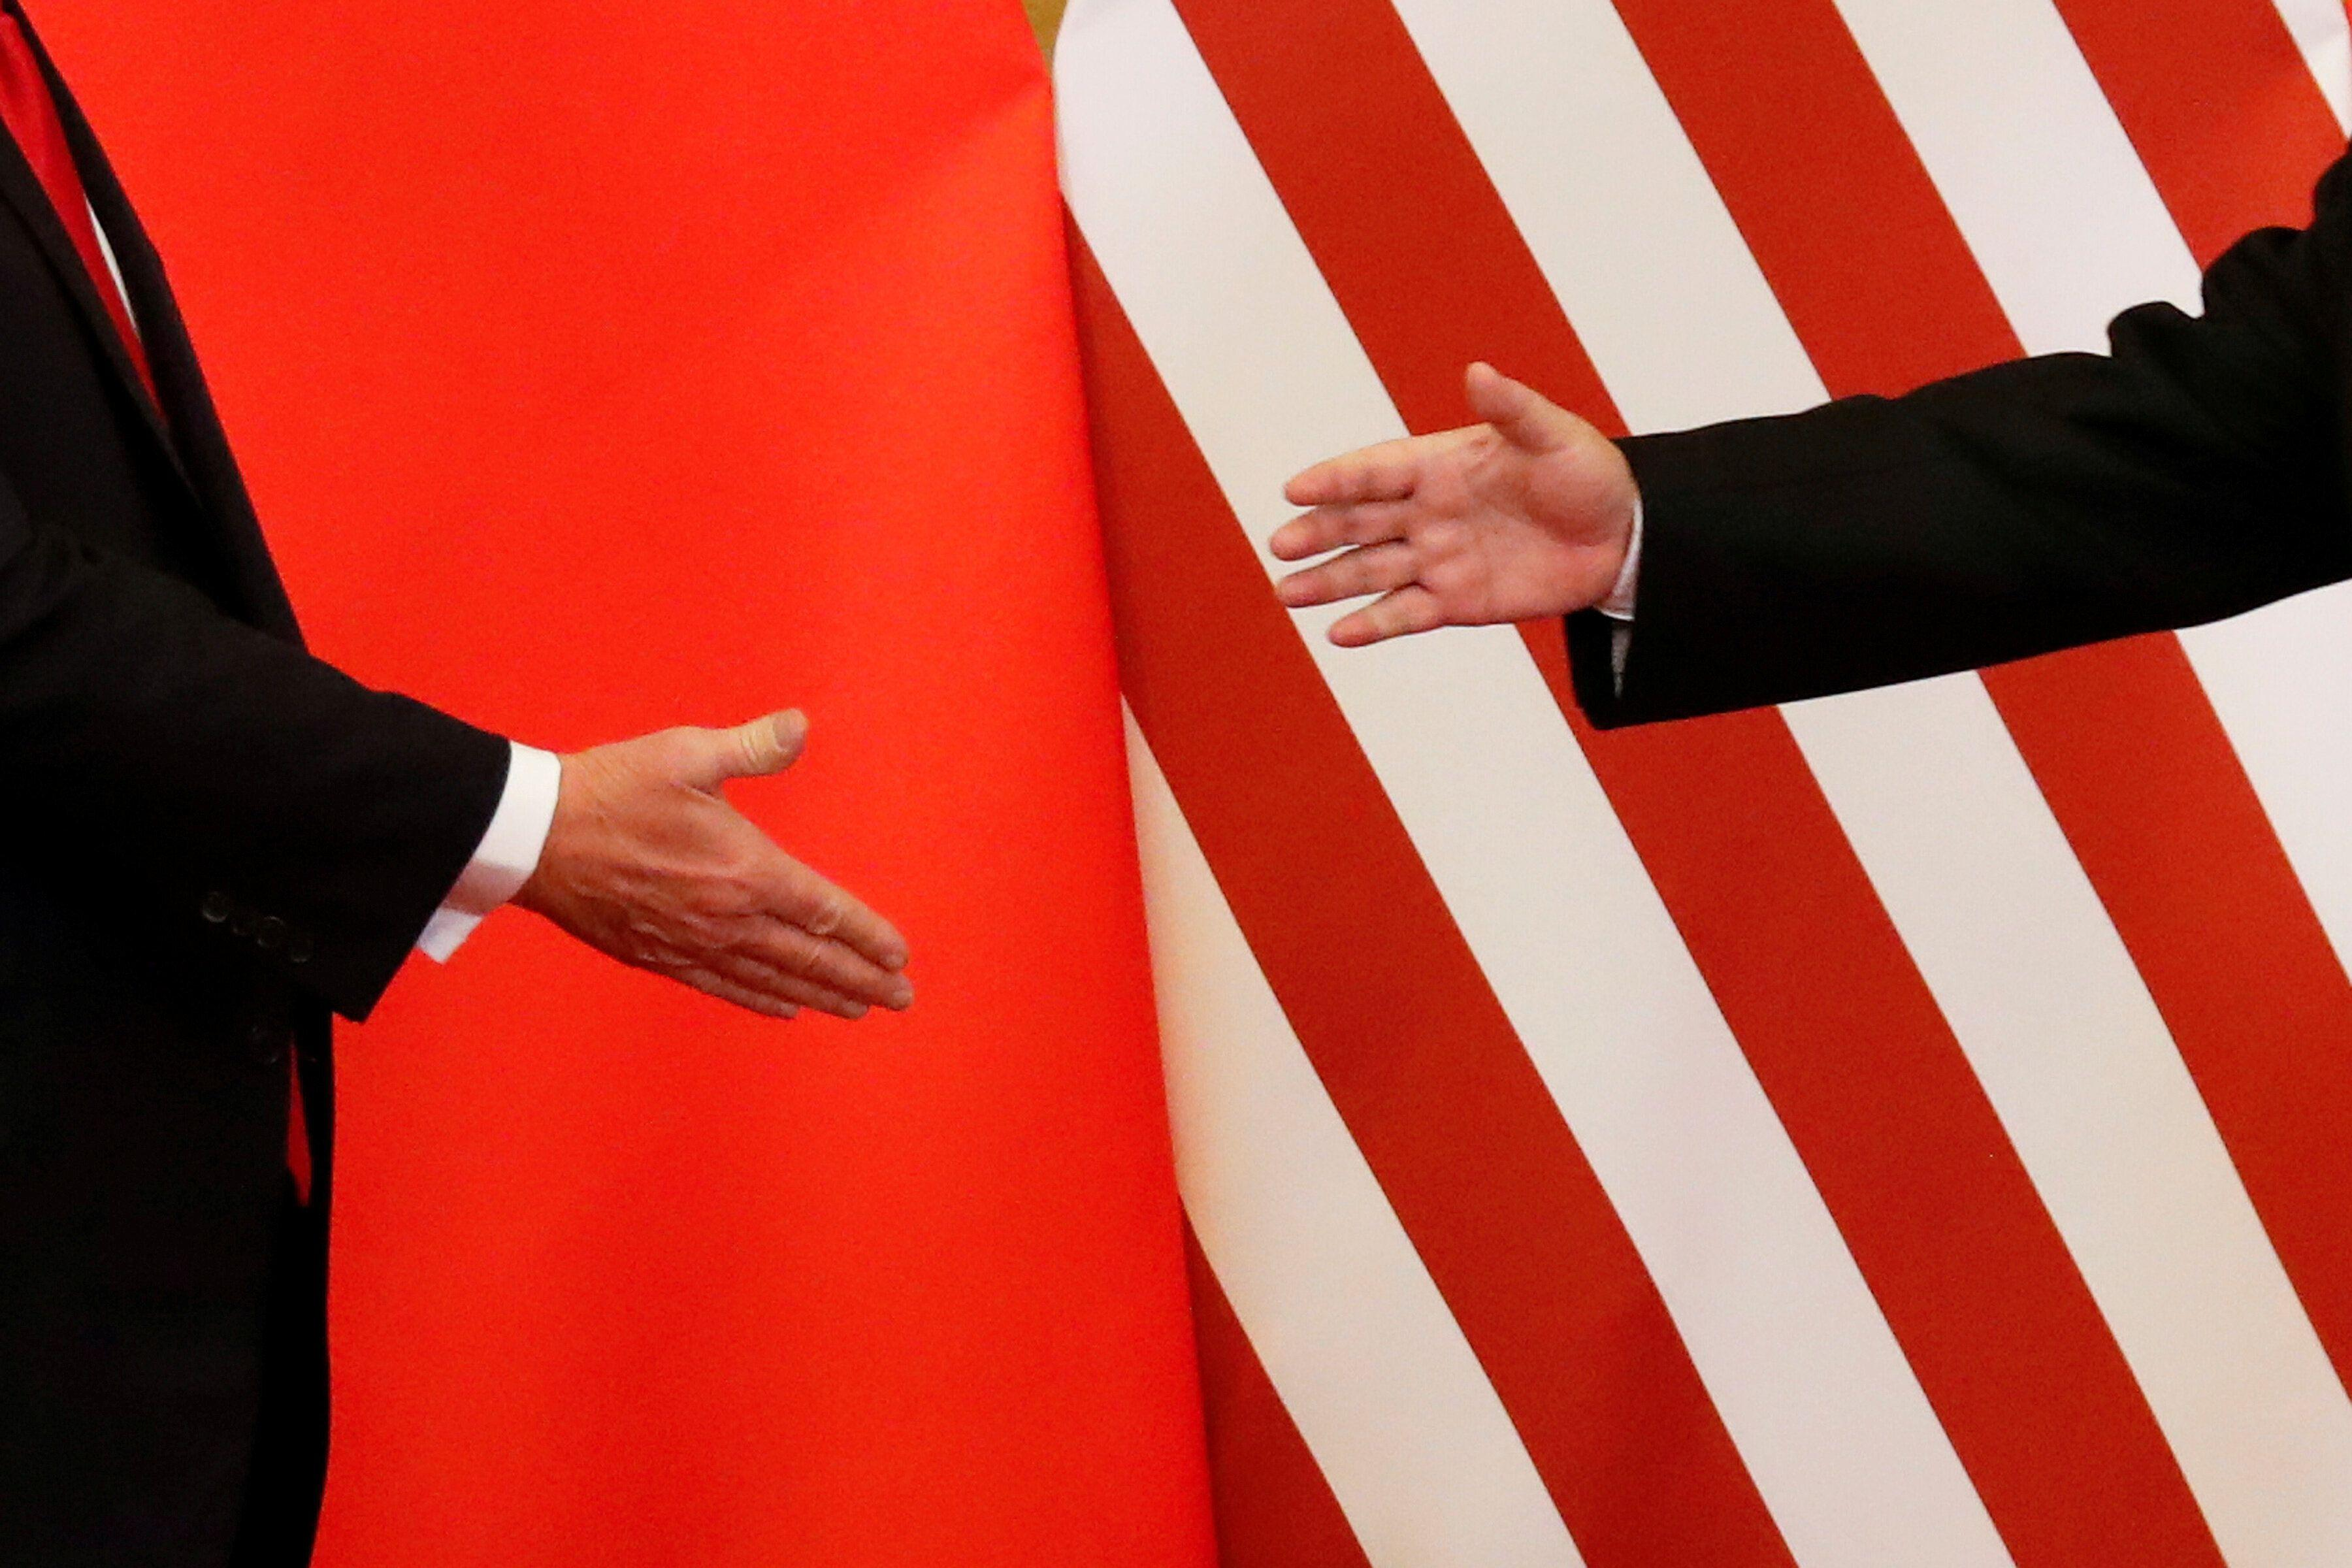 China Beige Book CEO on US trade war: 'The Chinese decided to get greedy'